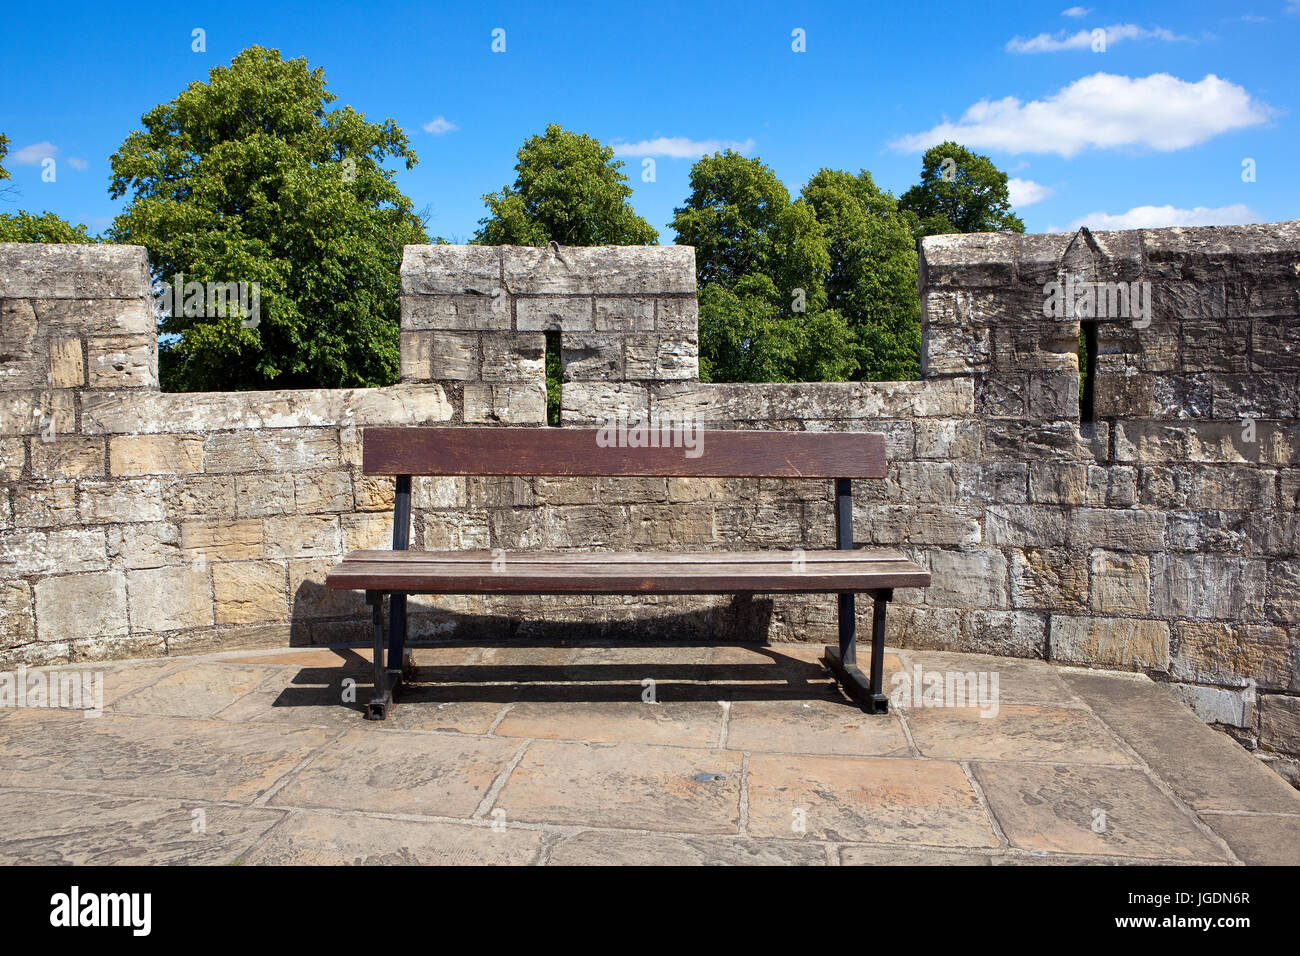 Brilliant A Wooden Bench On The Medieval Stone Walls Of The Ancient Machost Co Dining Chair Design Ideas Machostcouk